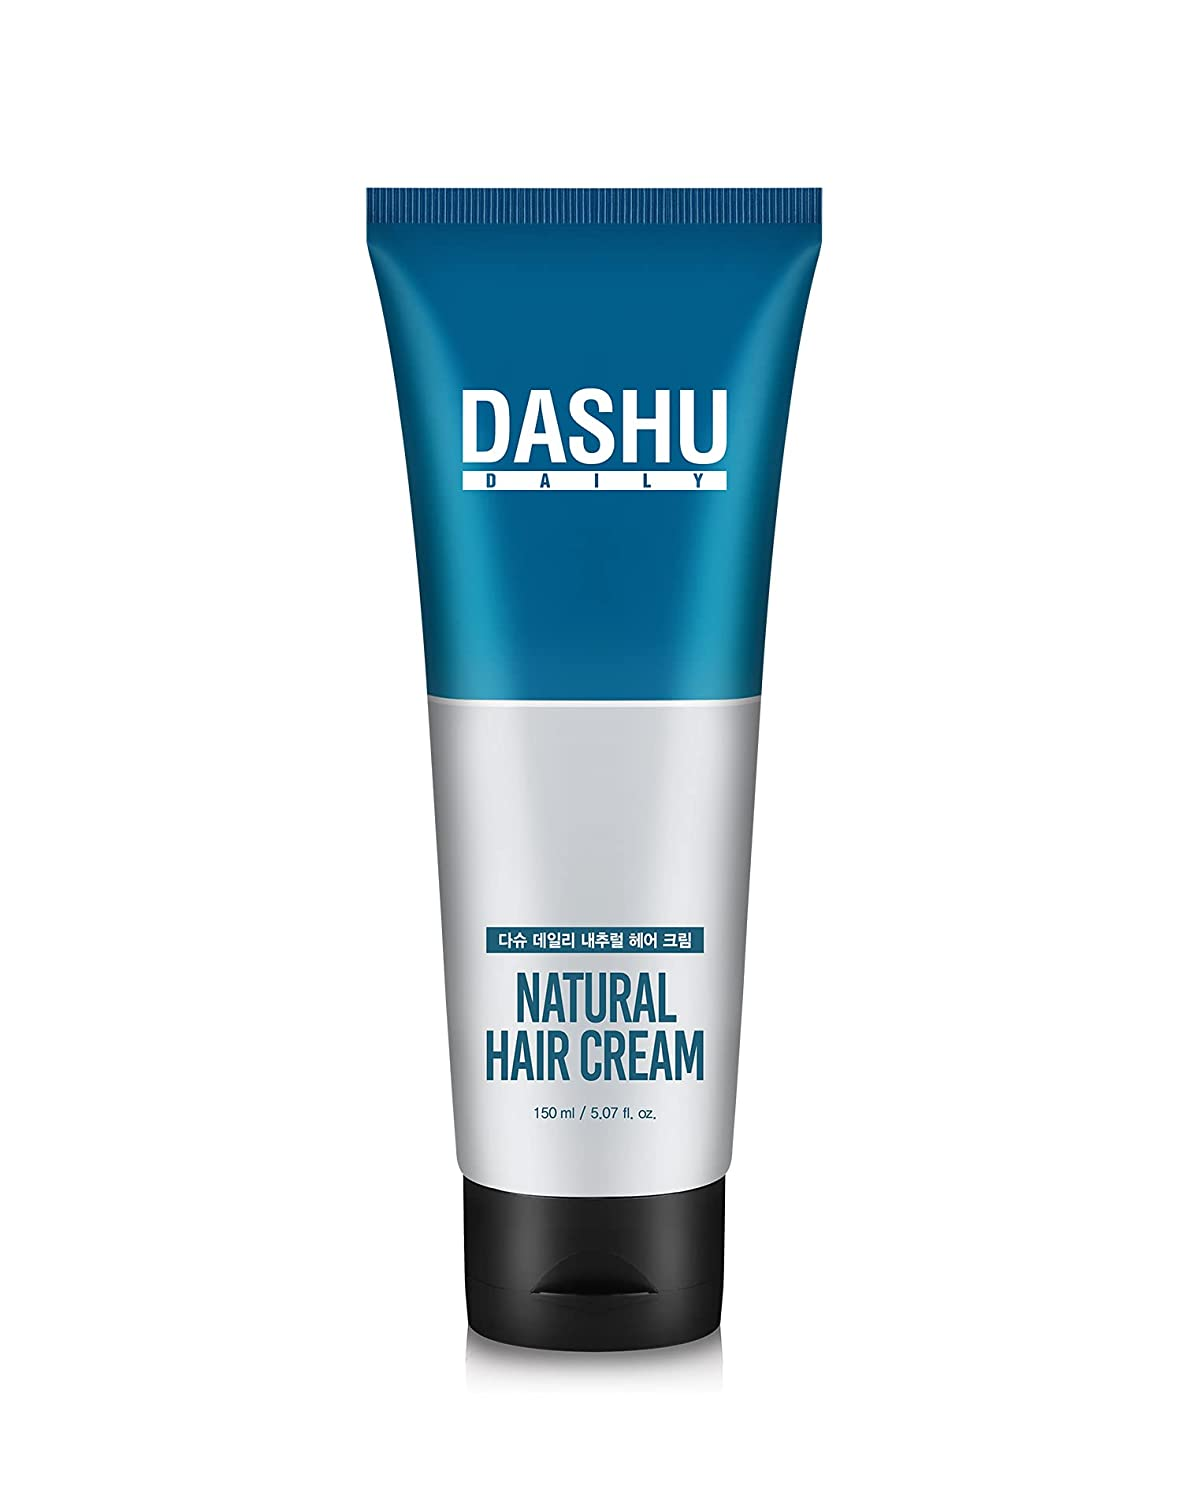 DASHU Daily Natural Hair Cream Max 54% OFF cream 5.07oz – styling Limited time cheap sale